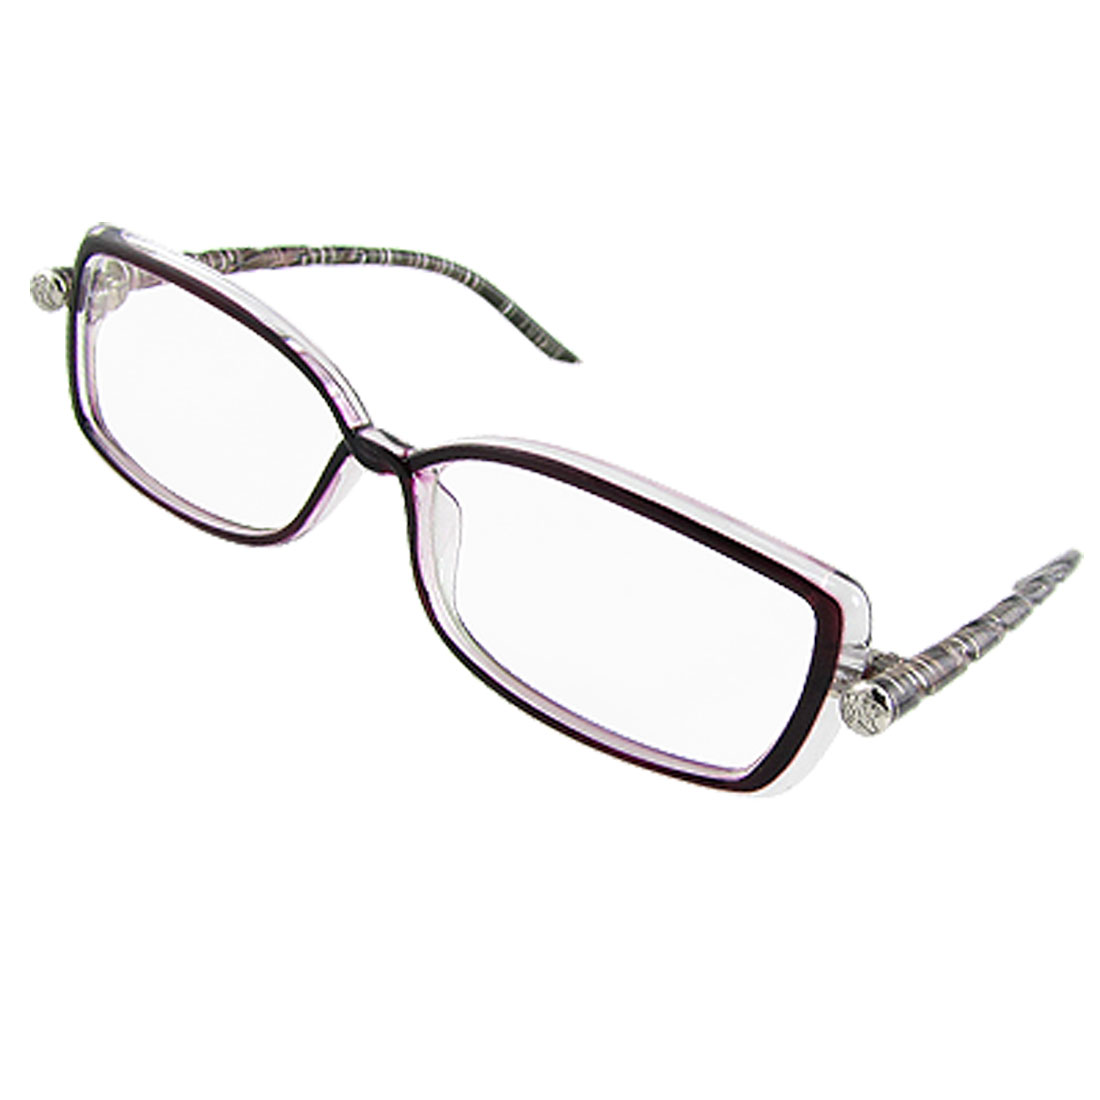 Lady Textured Round Plastic Arms Clear Lens Eyewear Glasses